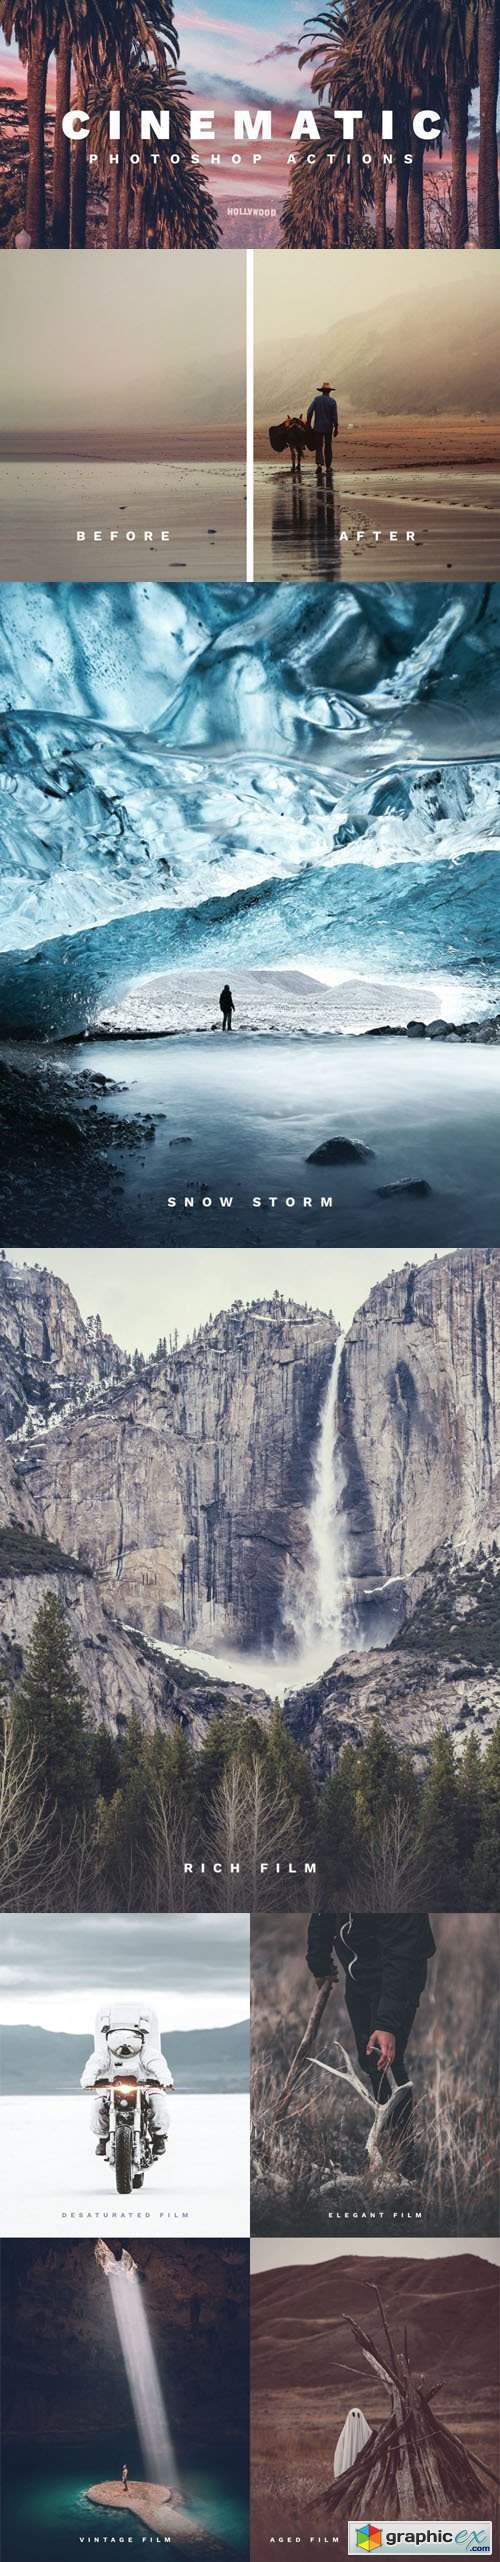 Film-Inspired - Cinematic Photoshop Actions [43 Actions]